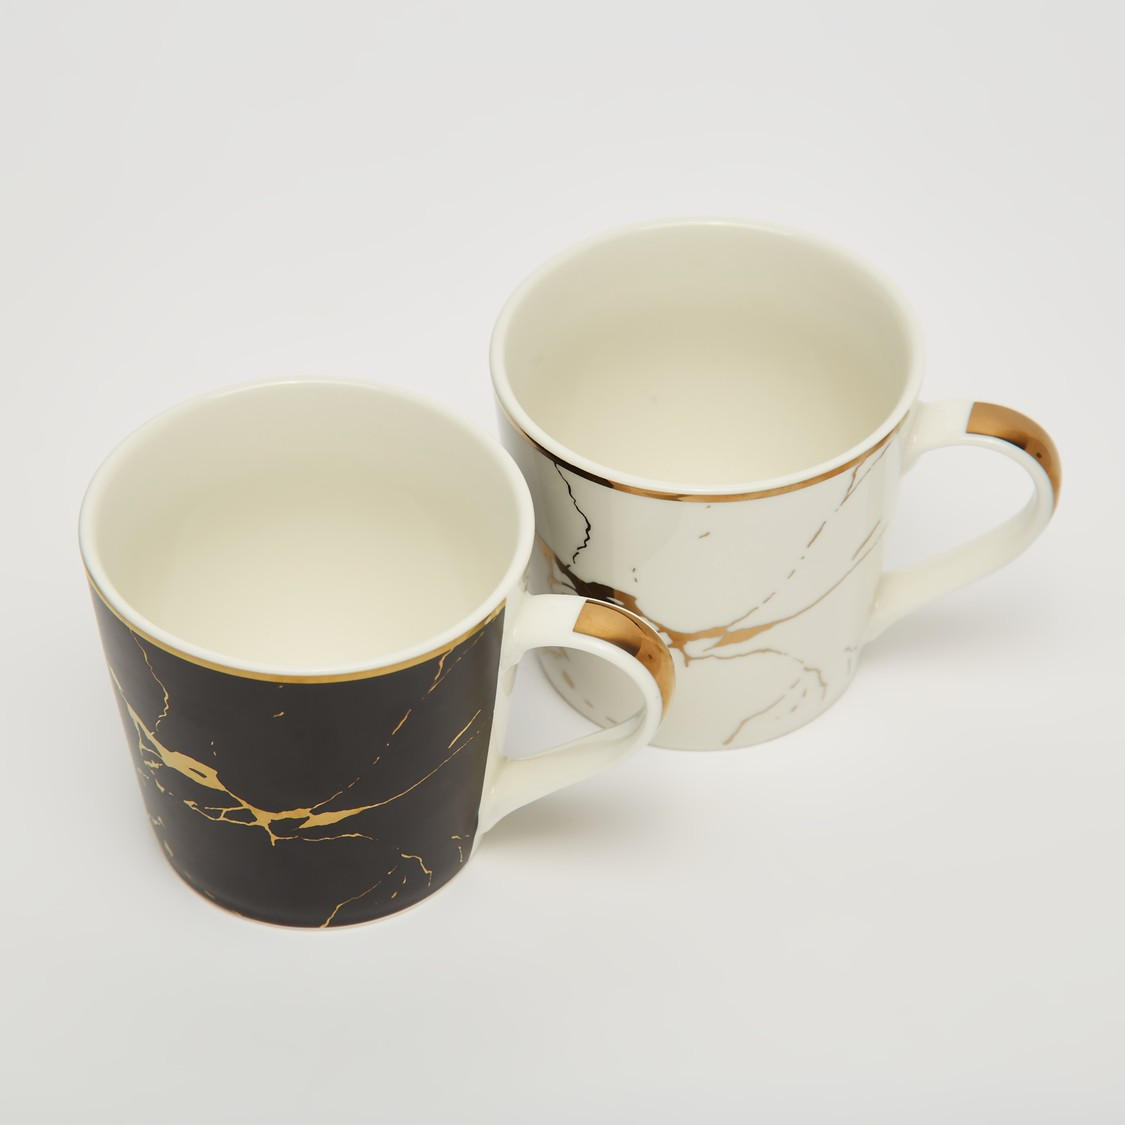 Set of 2 - Abstract Print Mug with Curved Handle